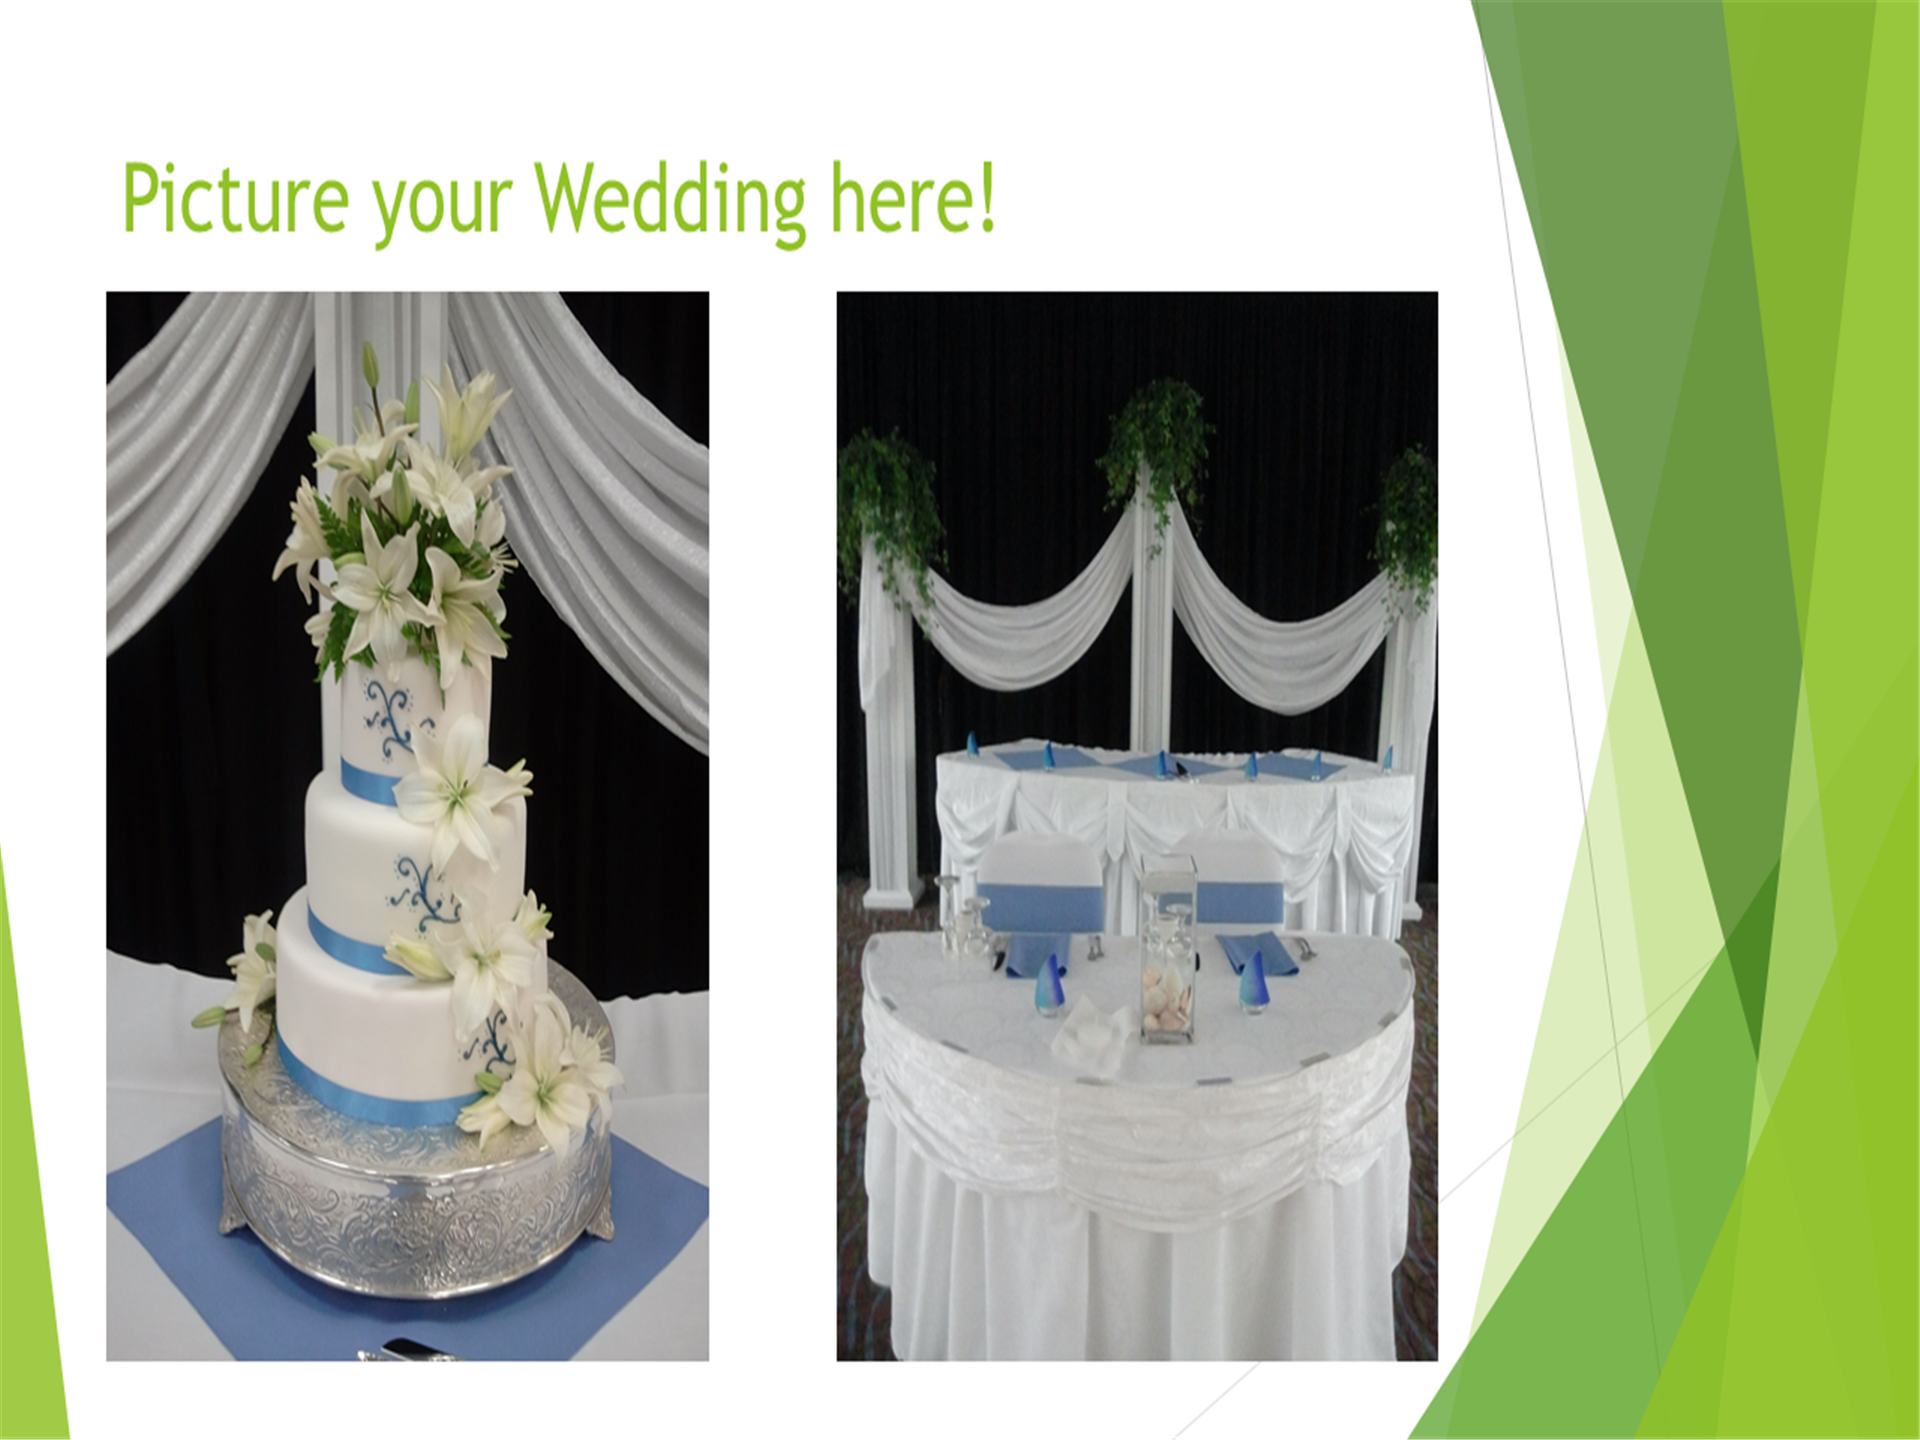 Picture your wedding here! Image of a three layer wedding cake and a bride and grooms reception table.